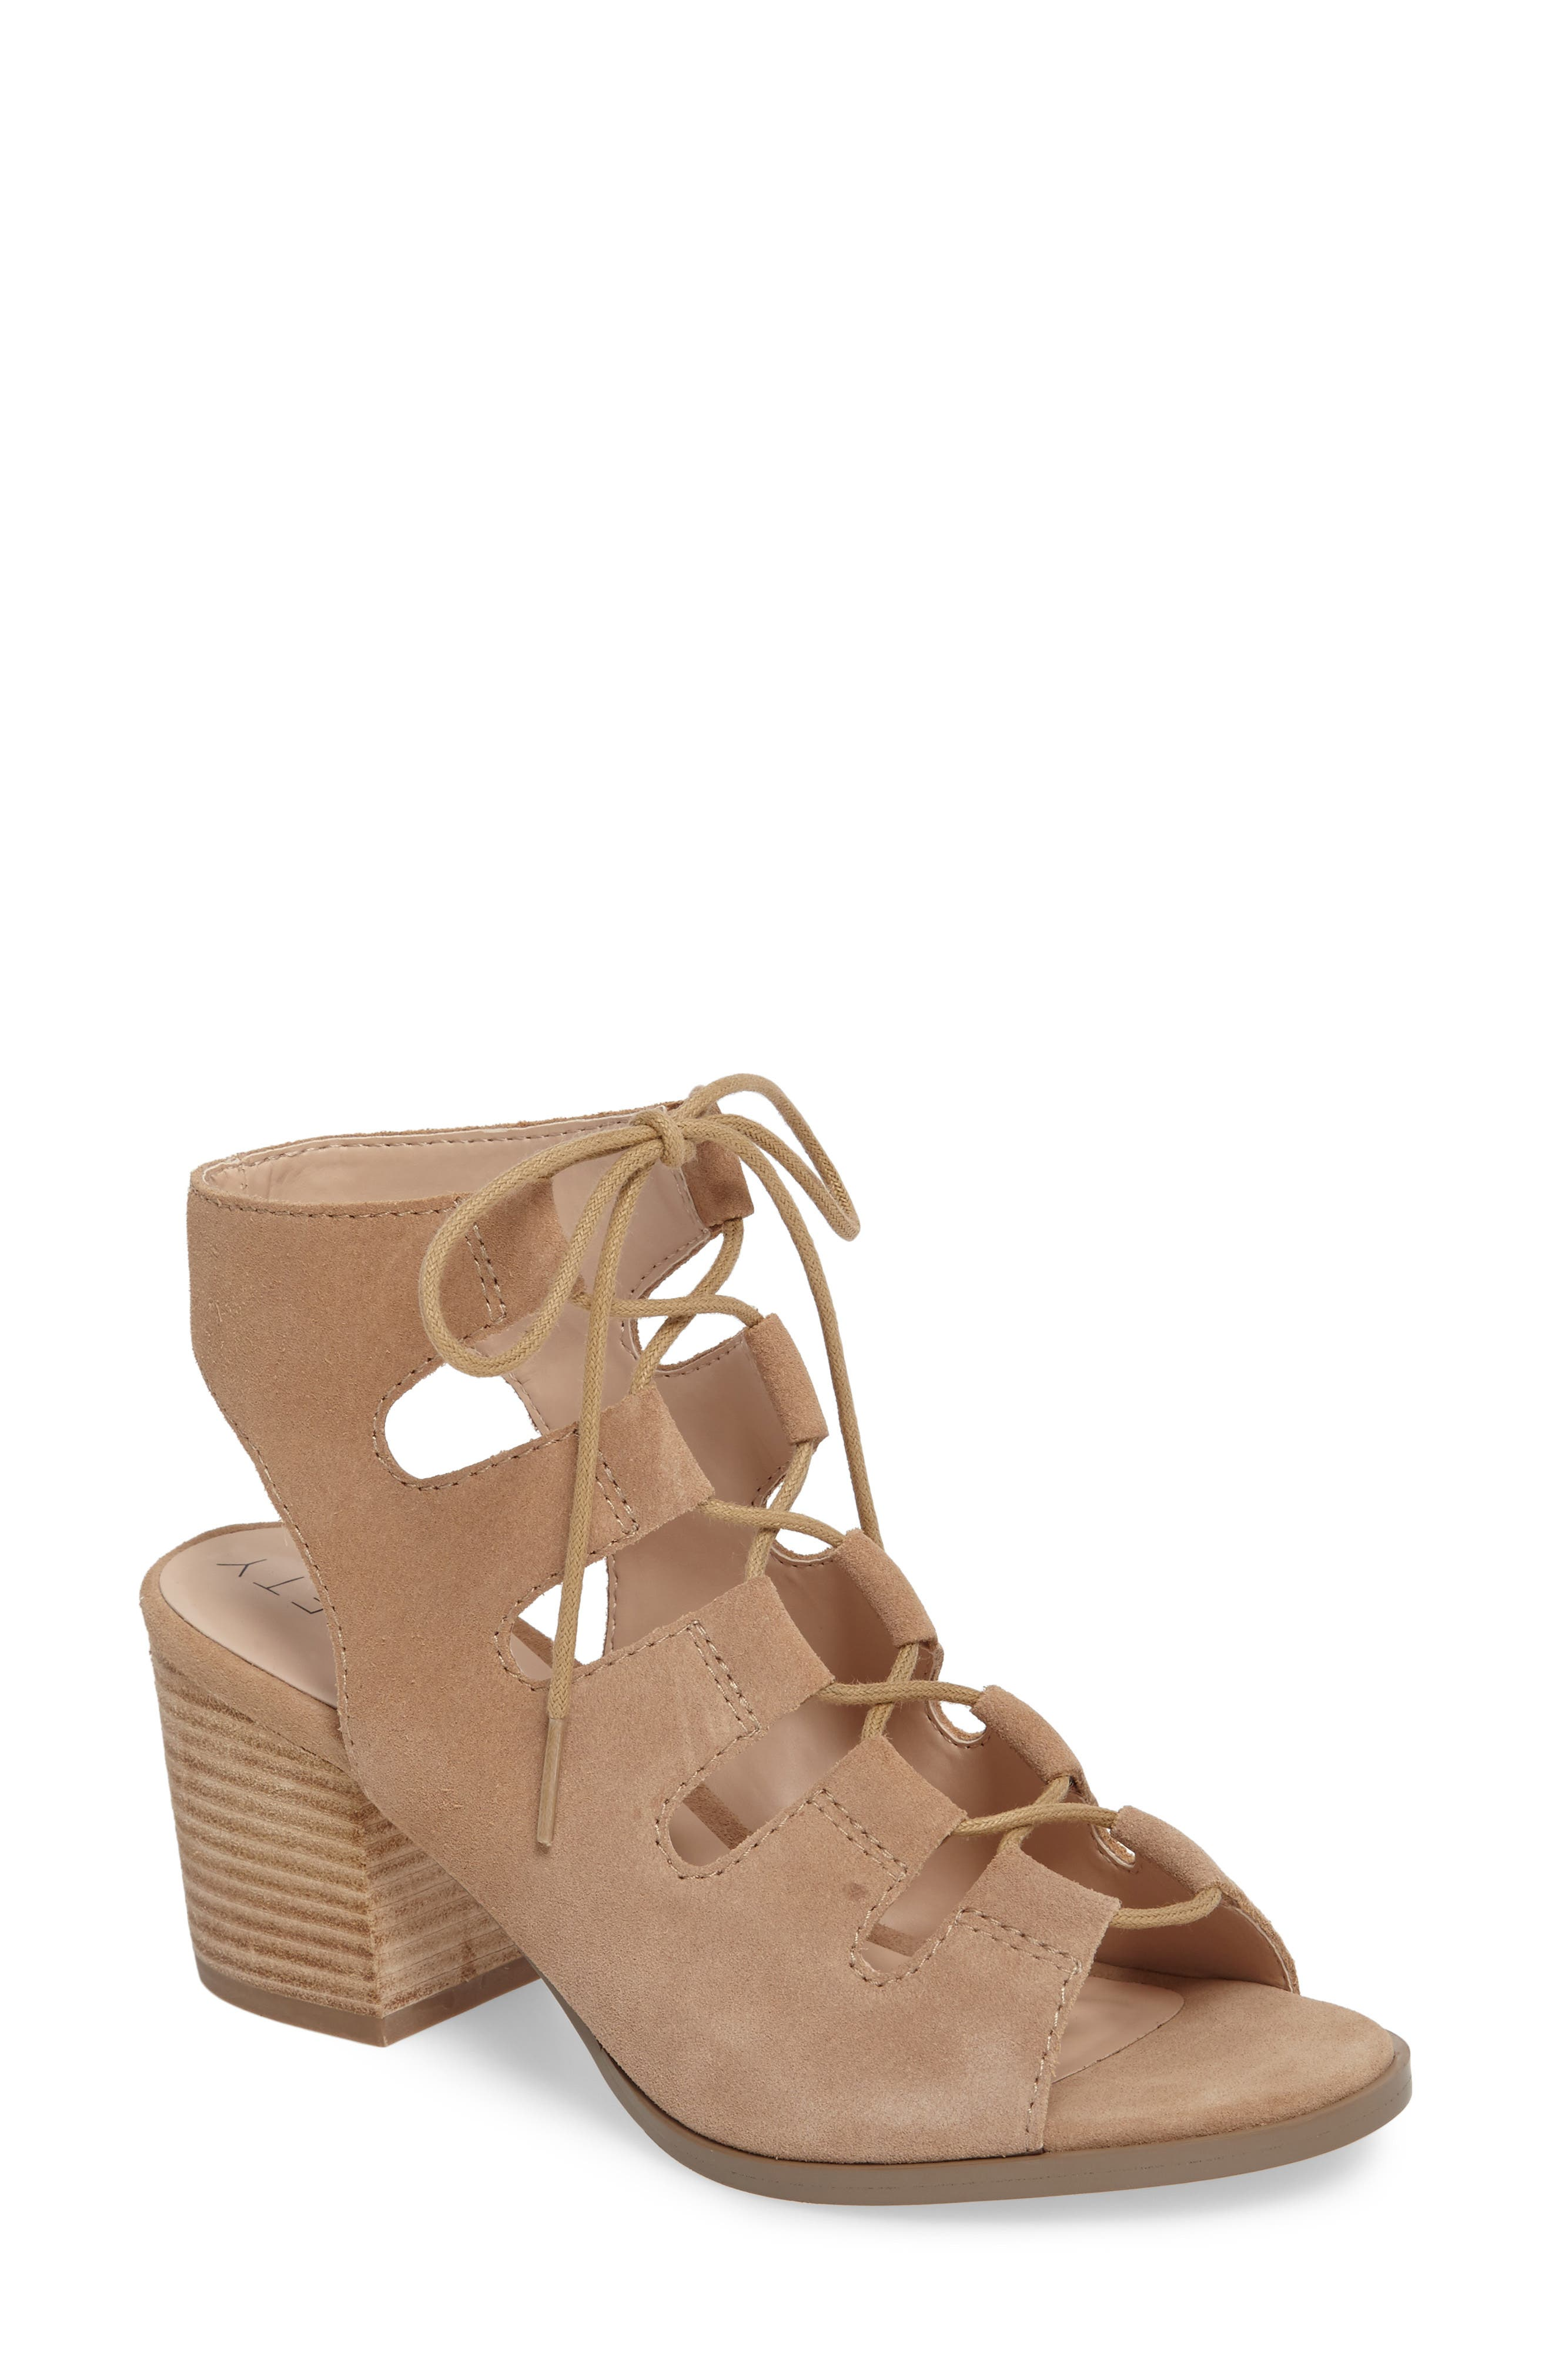 Main Image - Sole Society Rae Block Heel Sandal (Women)